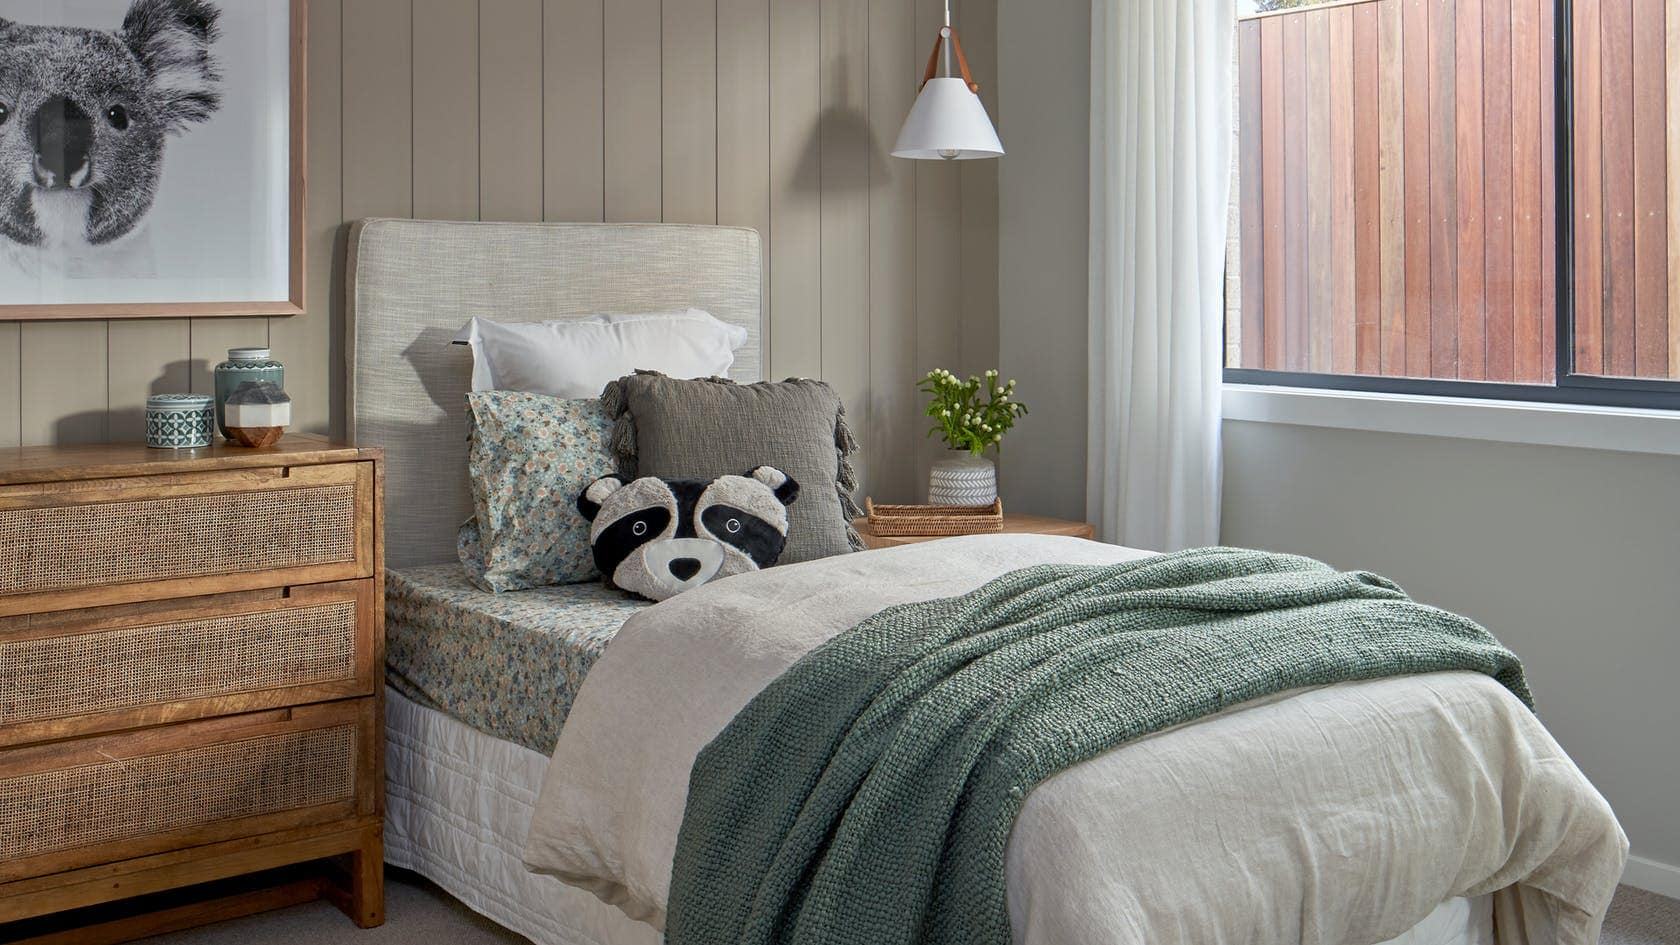 styling ideas for a single bed kids room with koala art on wall